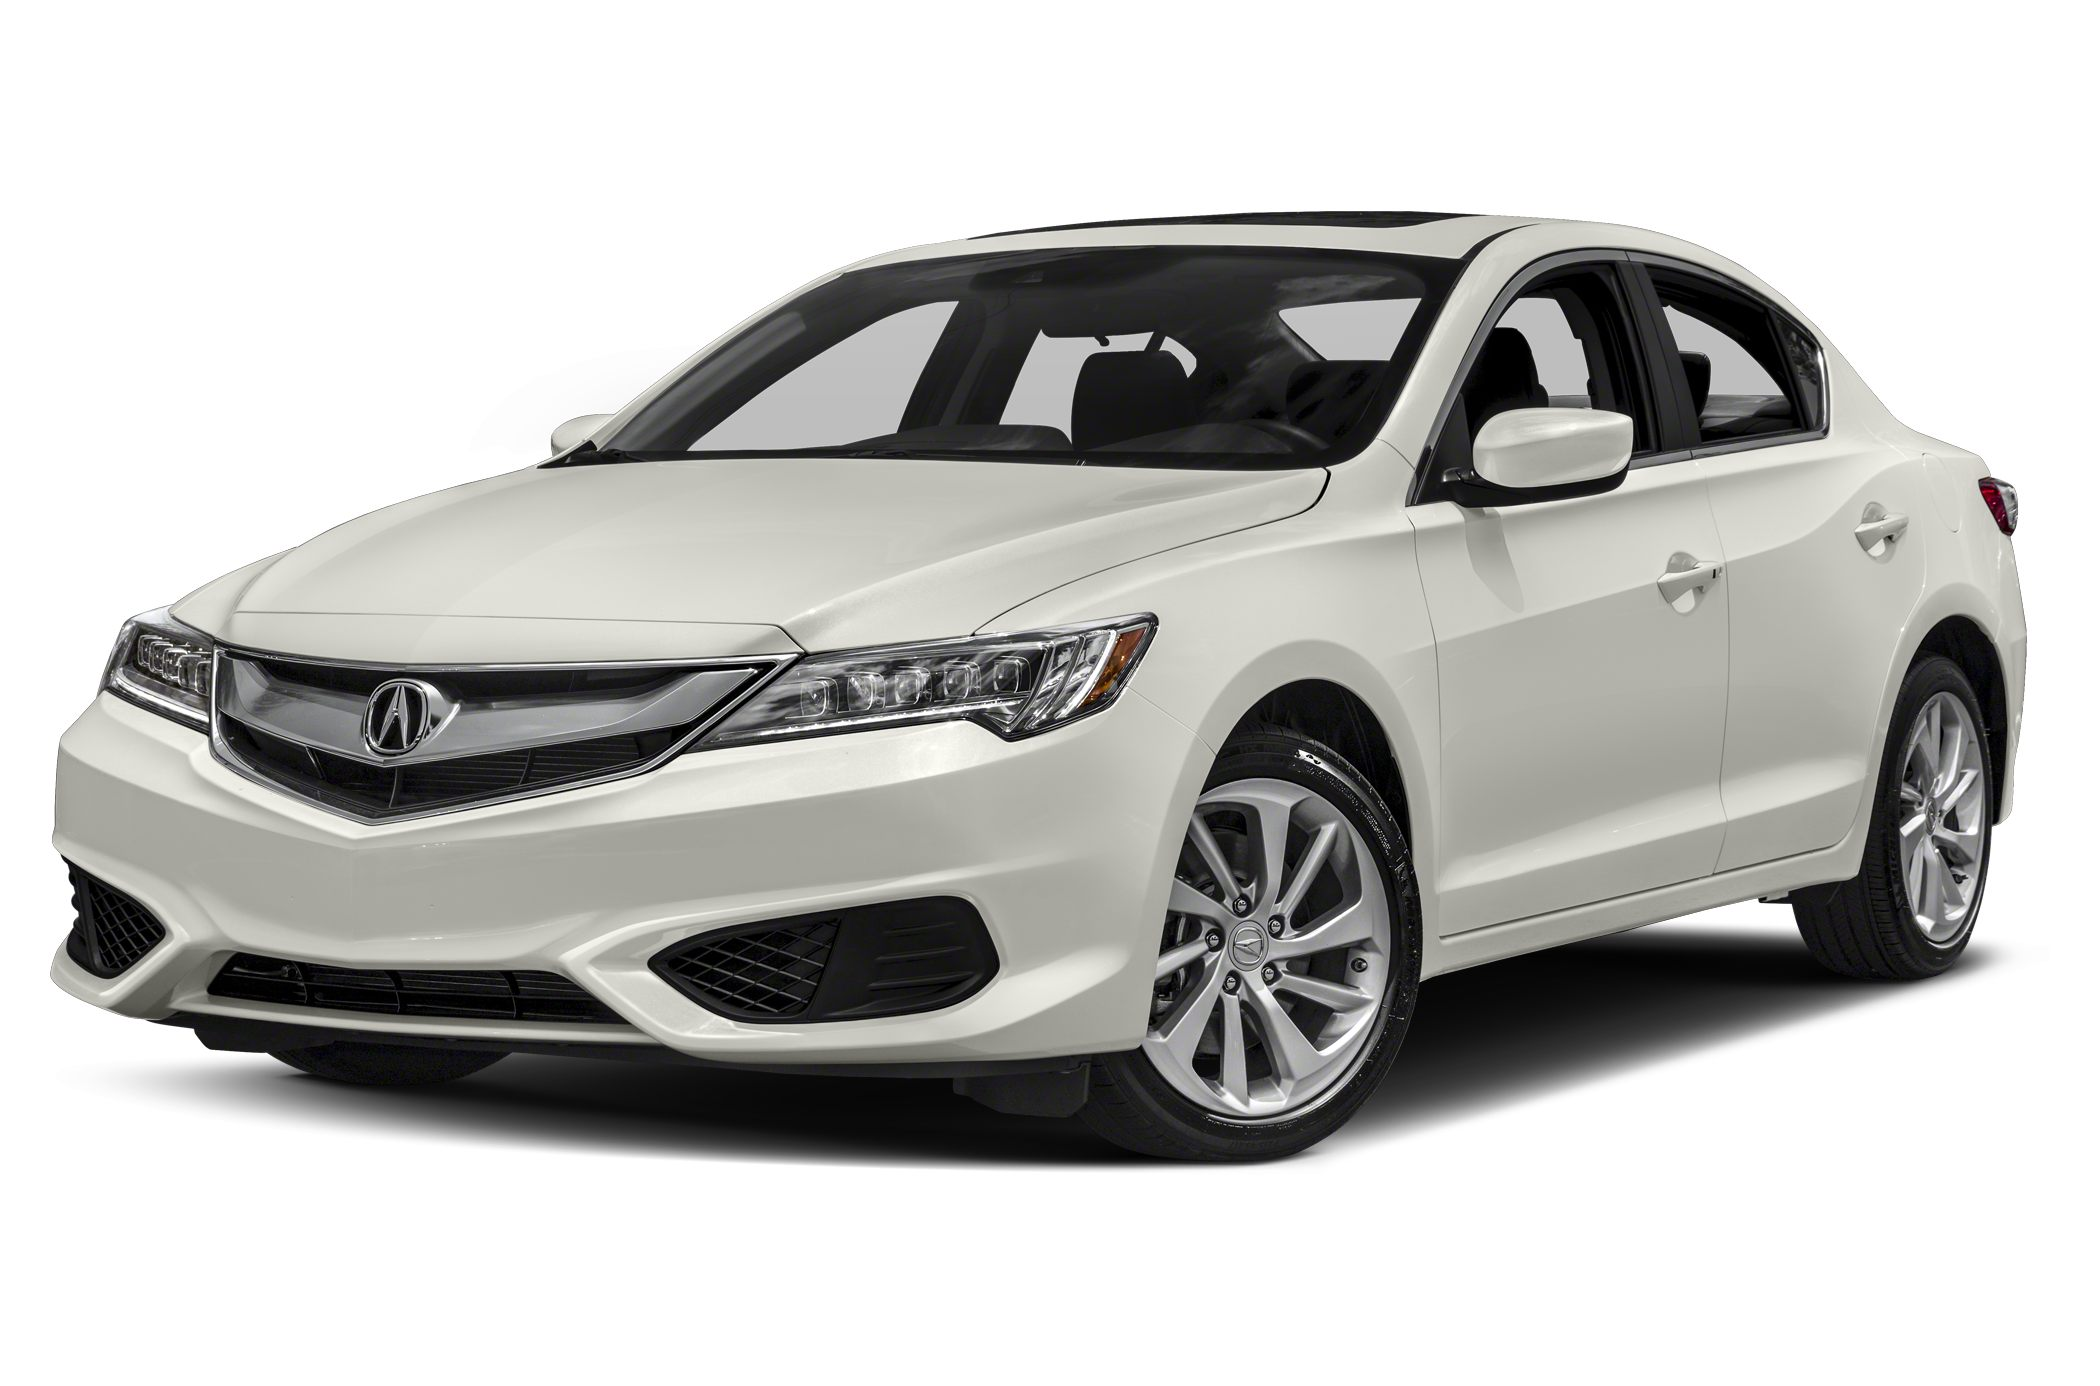 2017 Acura ILX AcuraWatch Plus Package 4dr Sedan for Sale